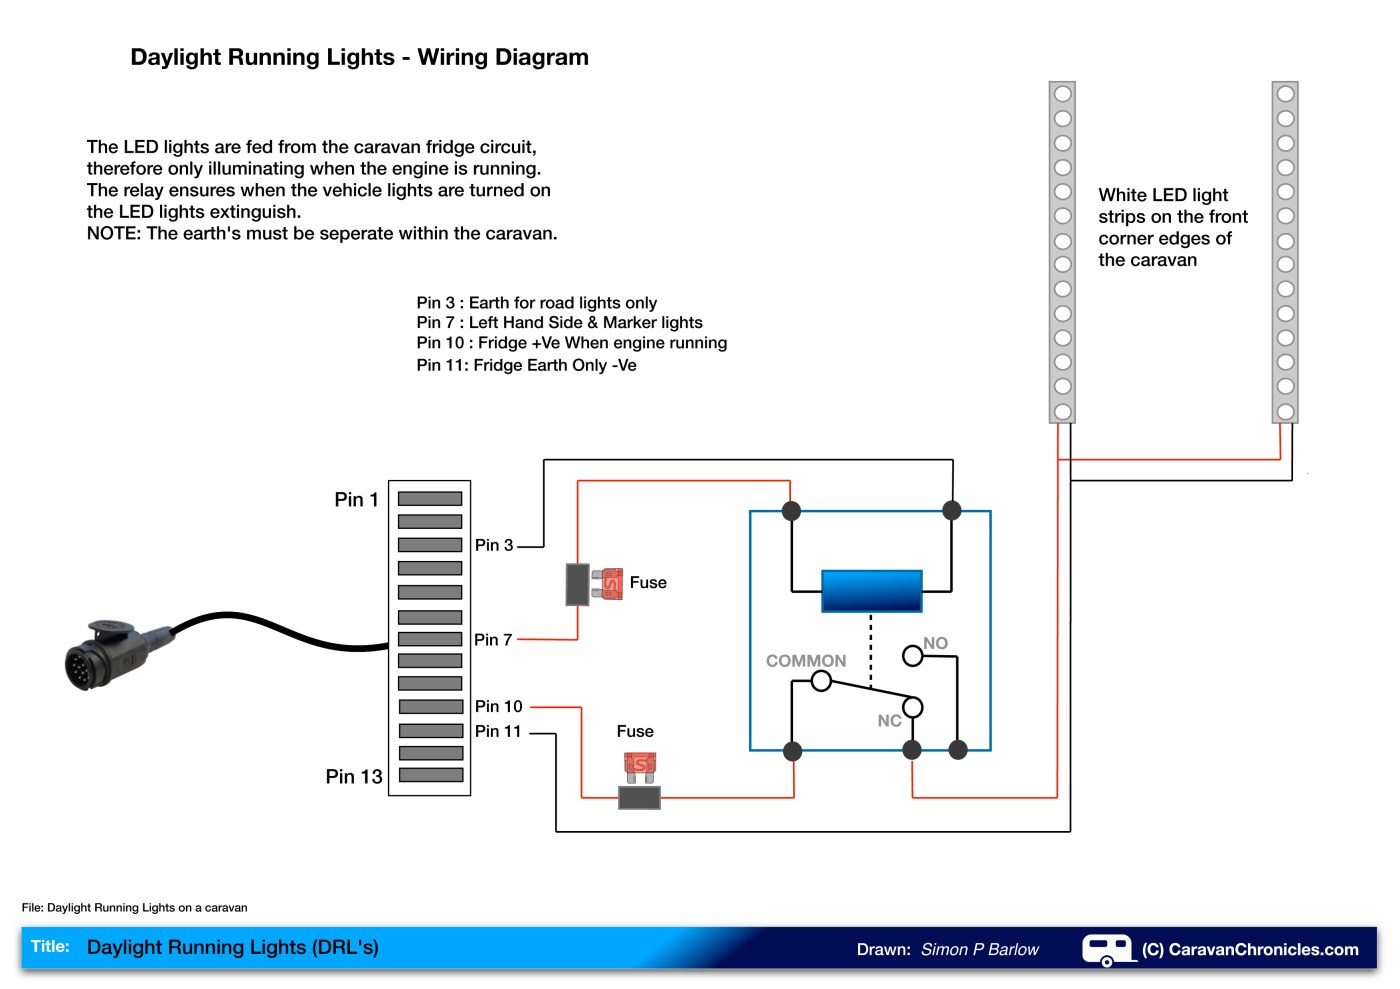 hight resolution of wiring daylight running lights drl s on a caravan caravan chronicles